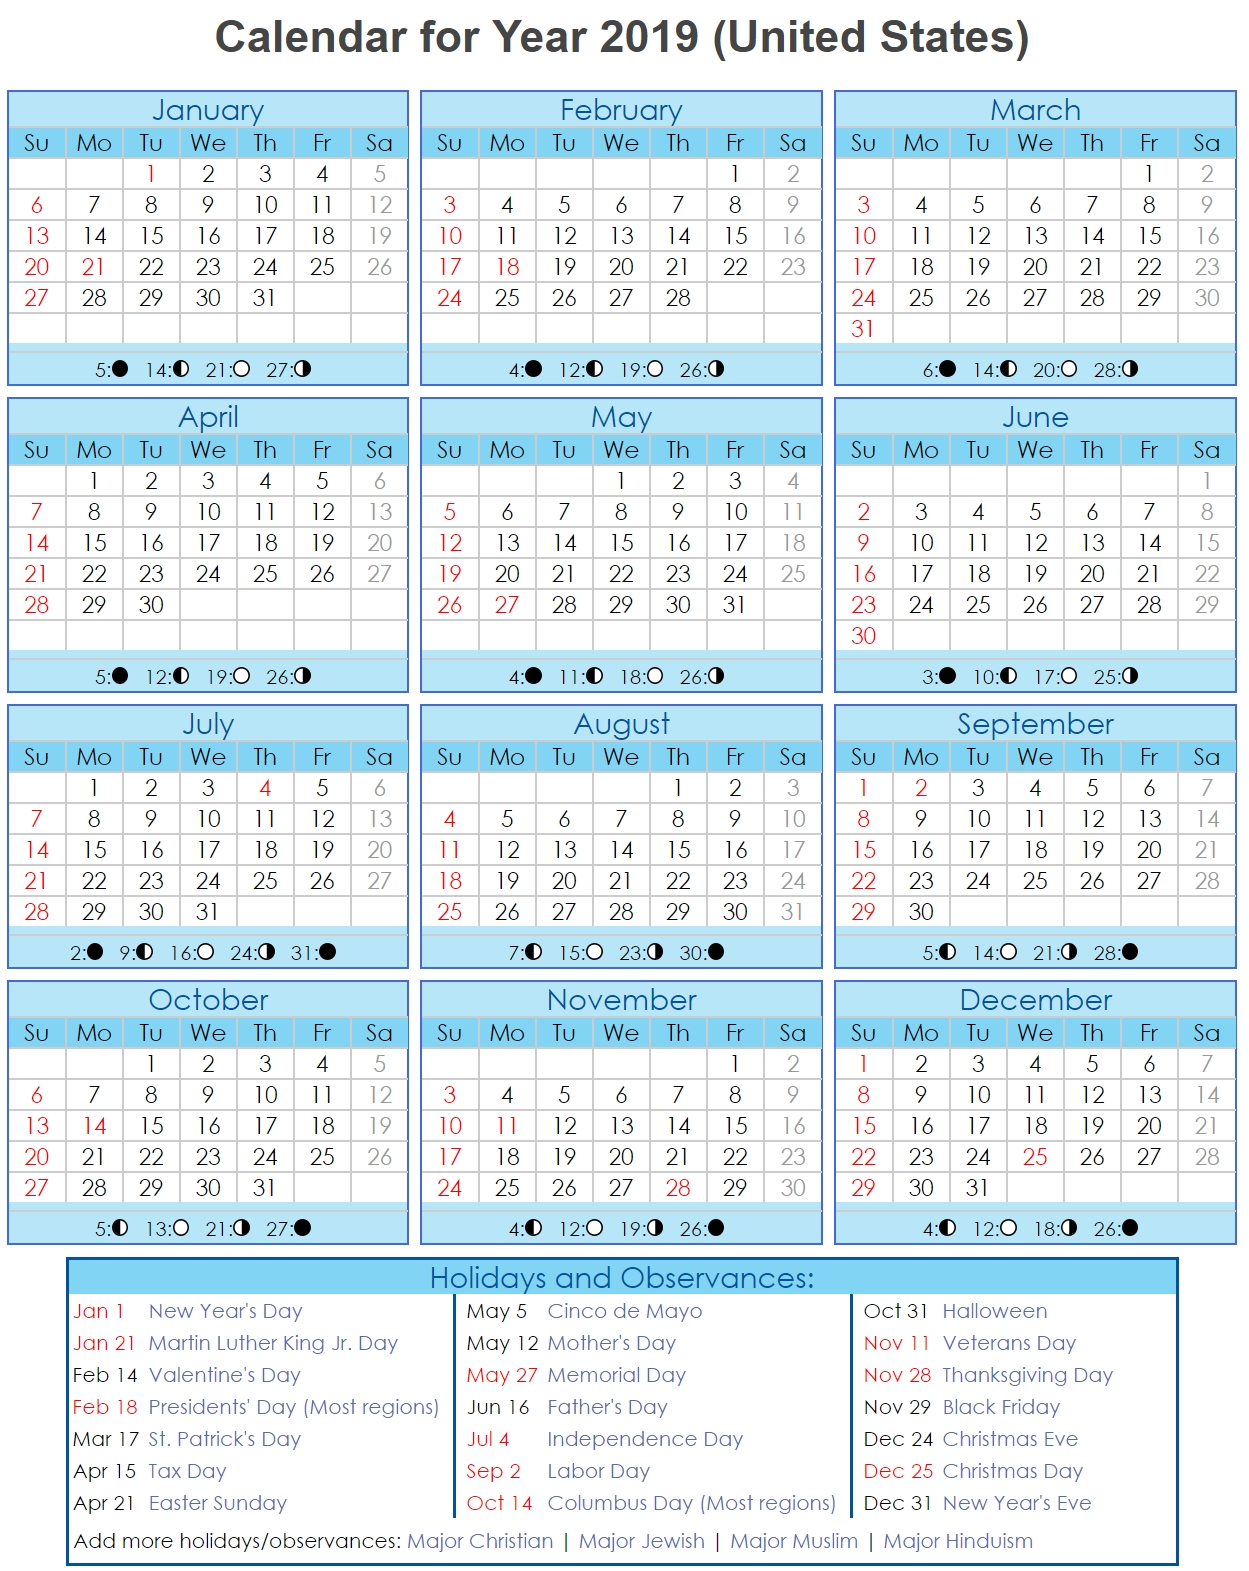 Year 2019 Calendar – United States | Free Printable 2018 Calendar Calendar Year 2019 United States